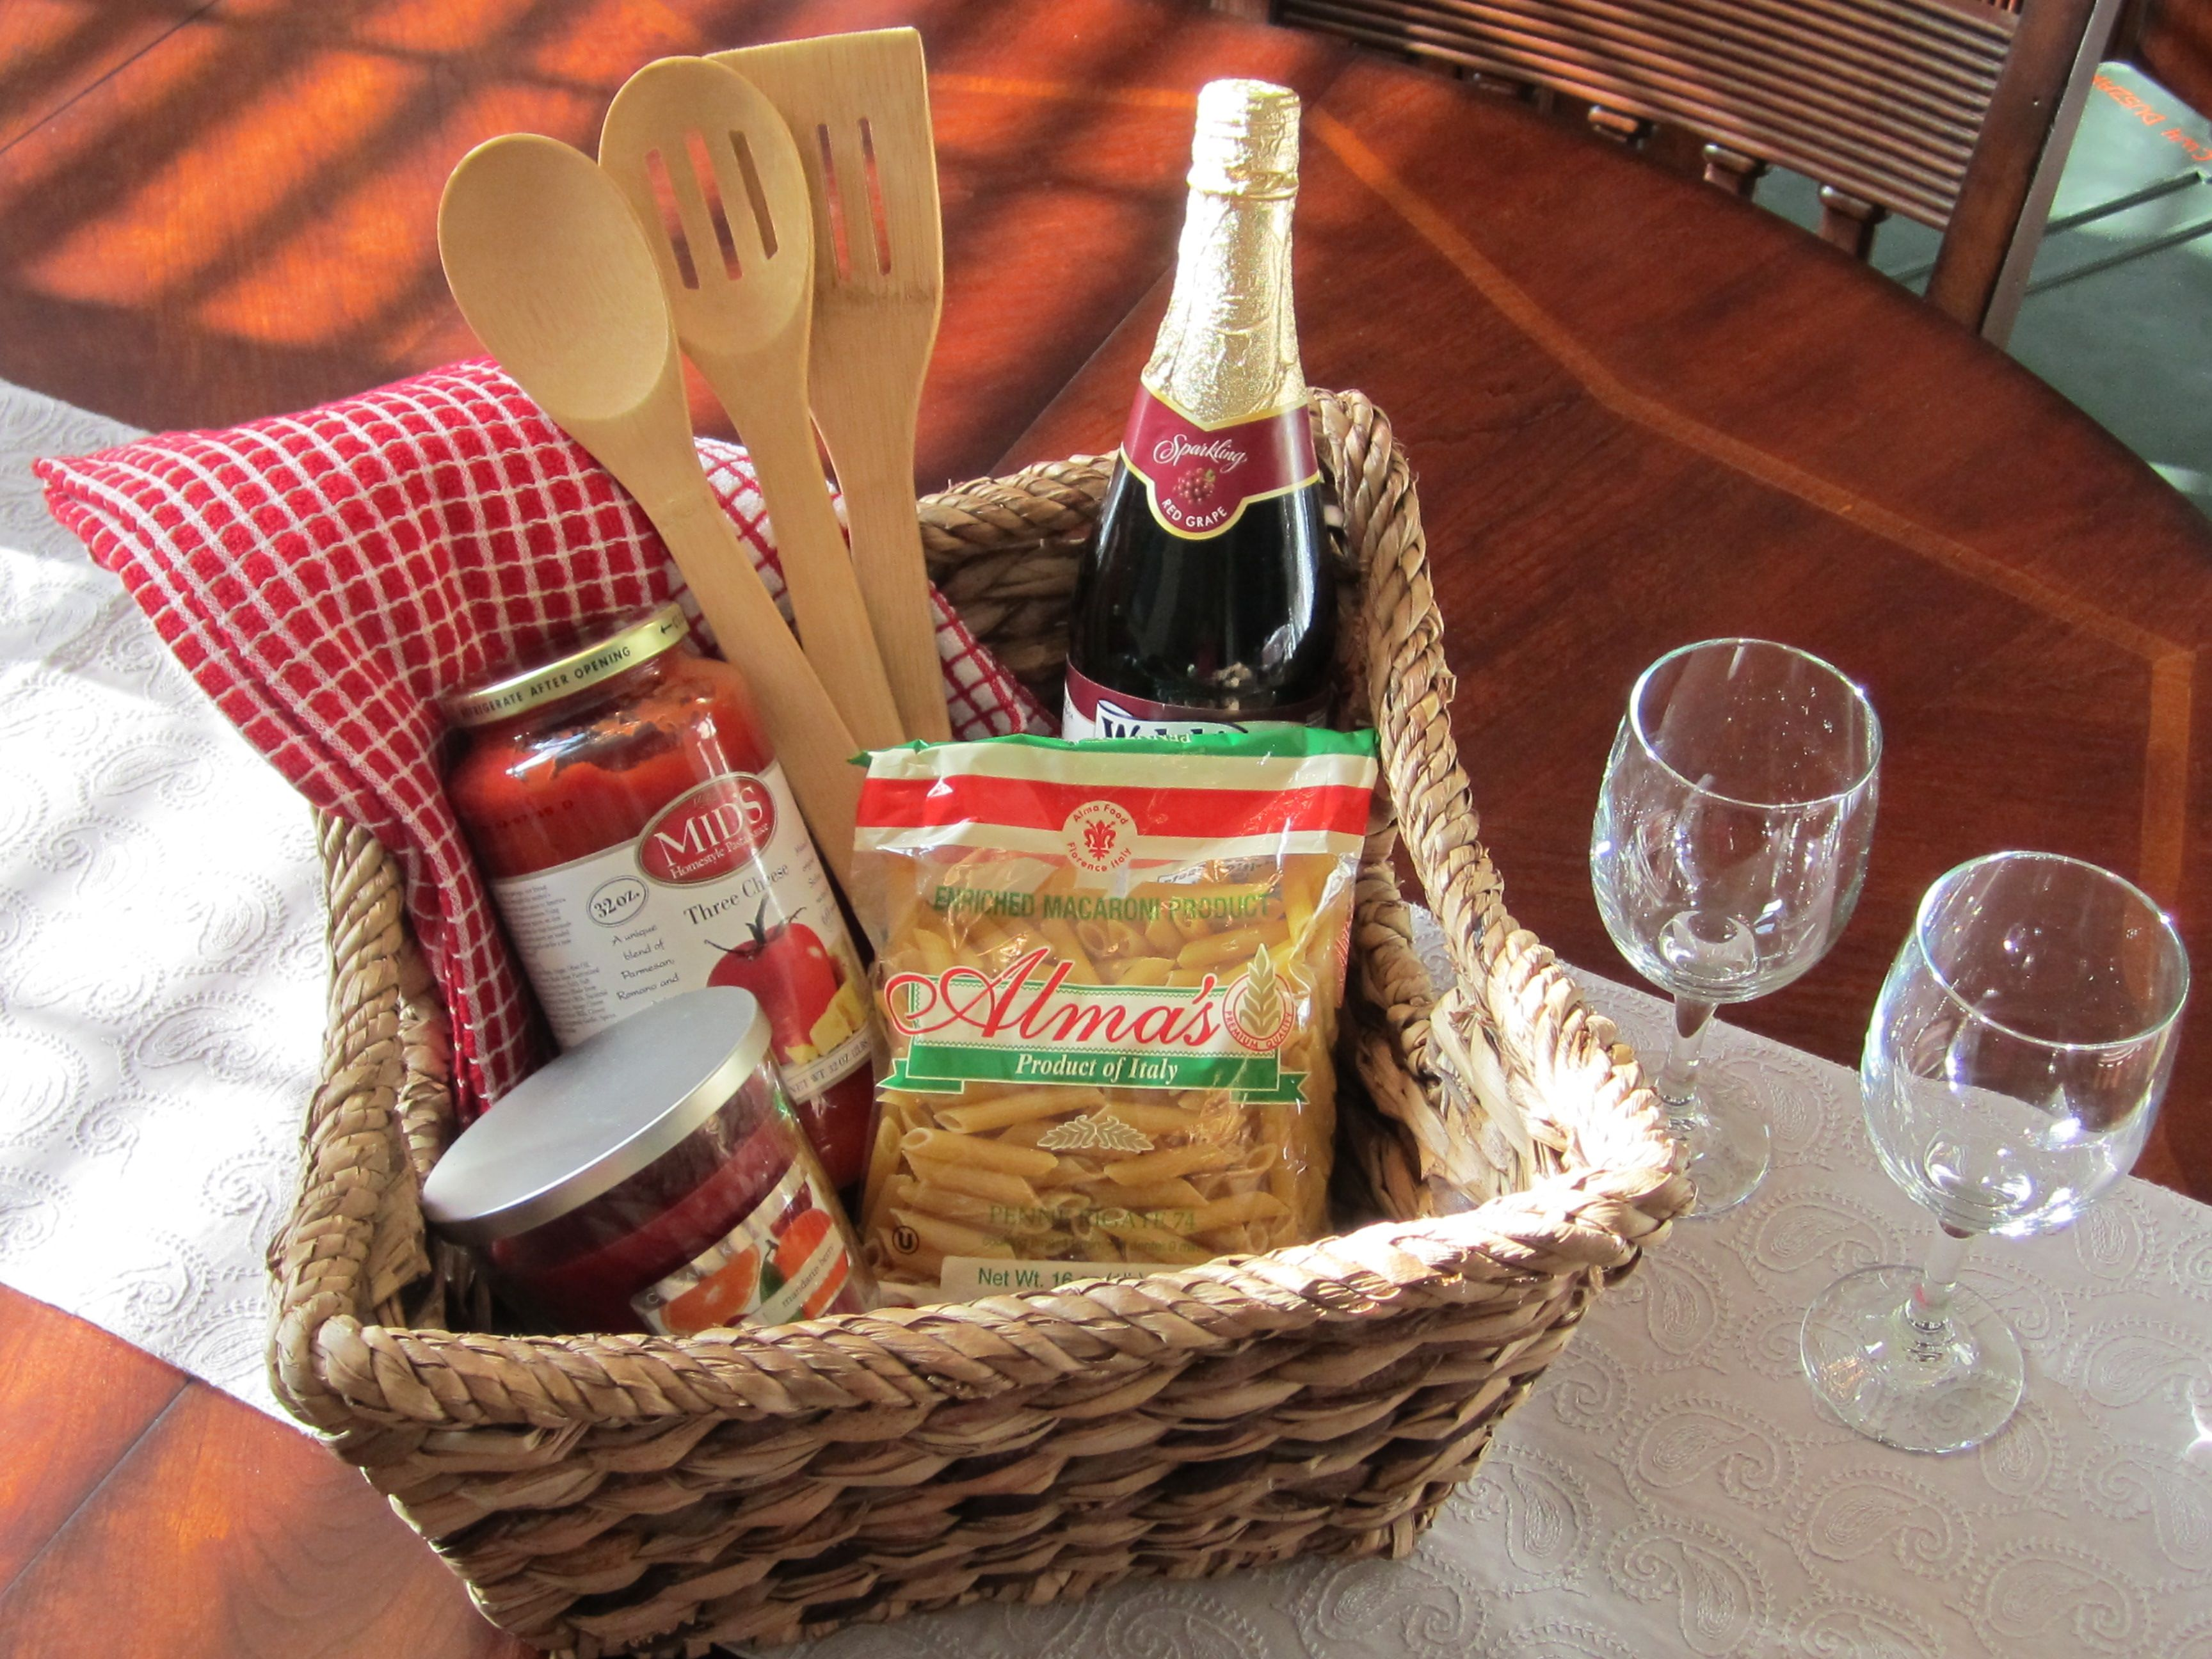 Italian Dinner For Two Gift Basket  Add A Baguette